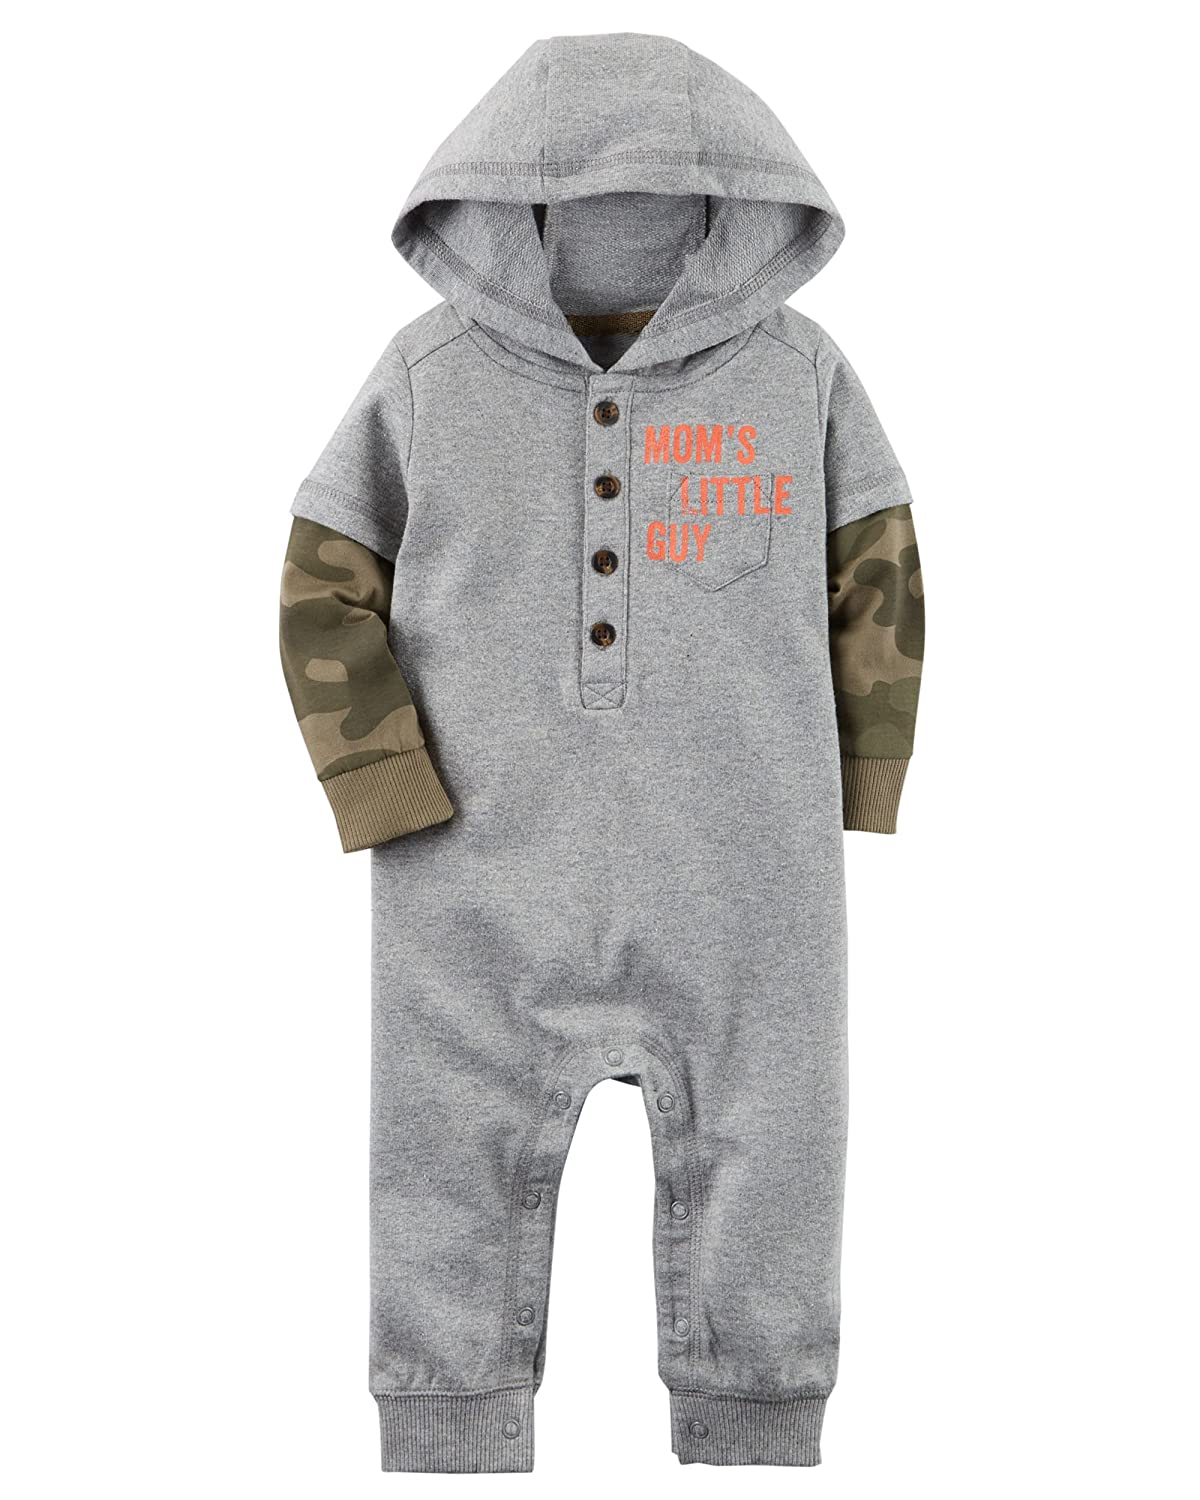 3564d4f30f2 Amazon.com  Carter s Baby Boys  Hooded French Terry Jumpsuit  Clothing